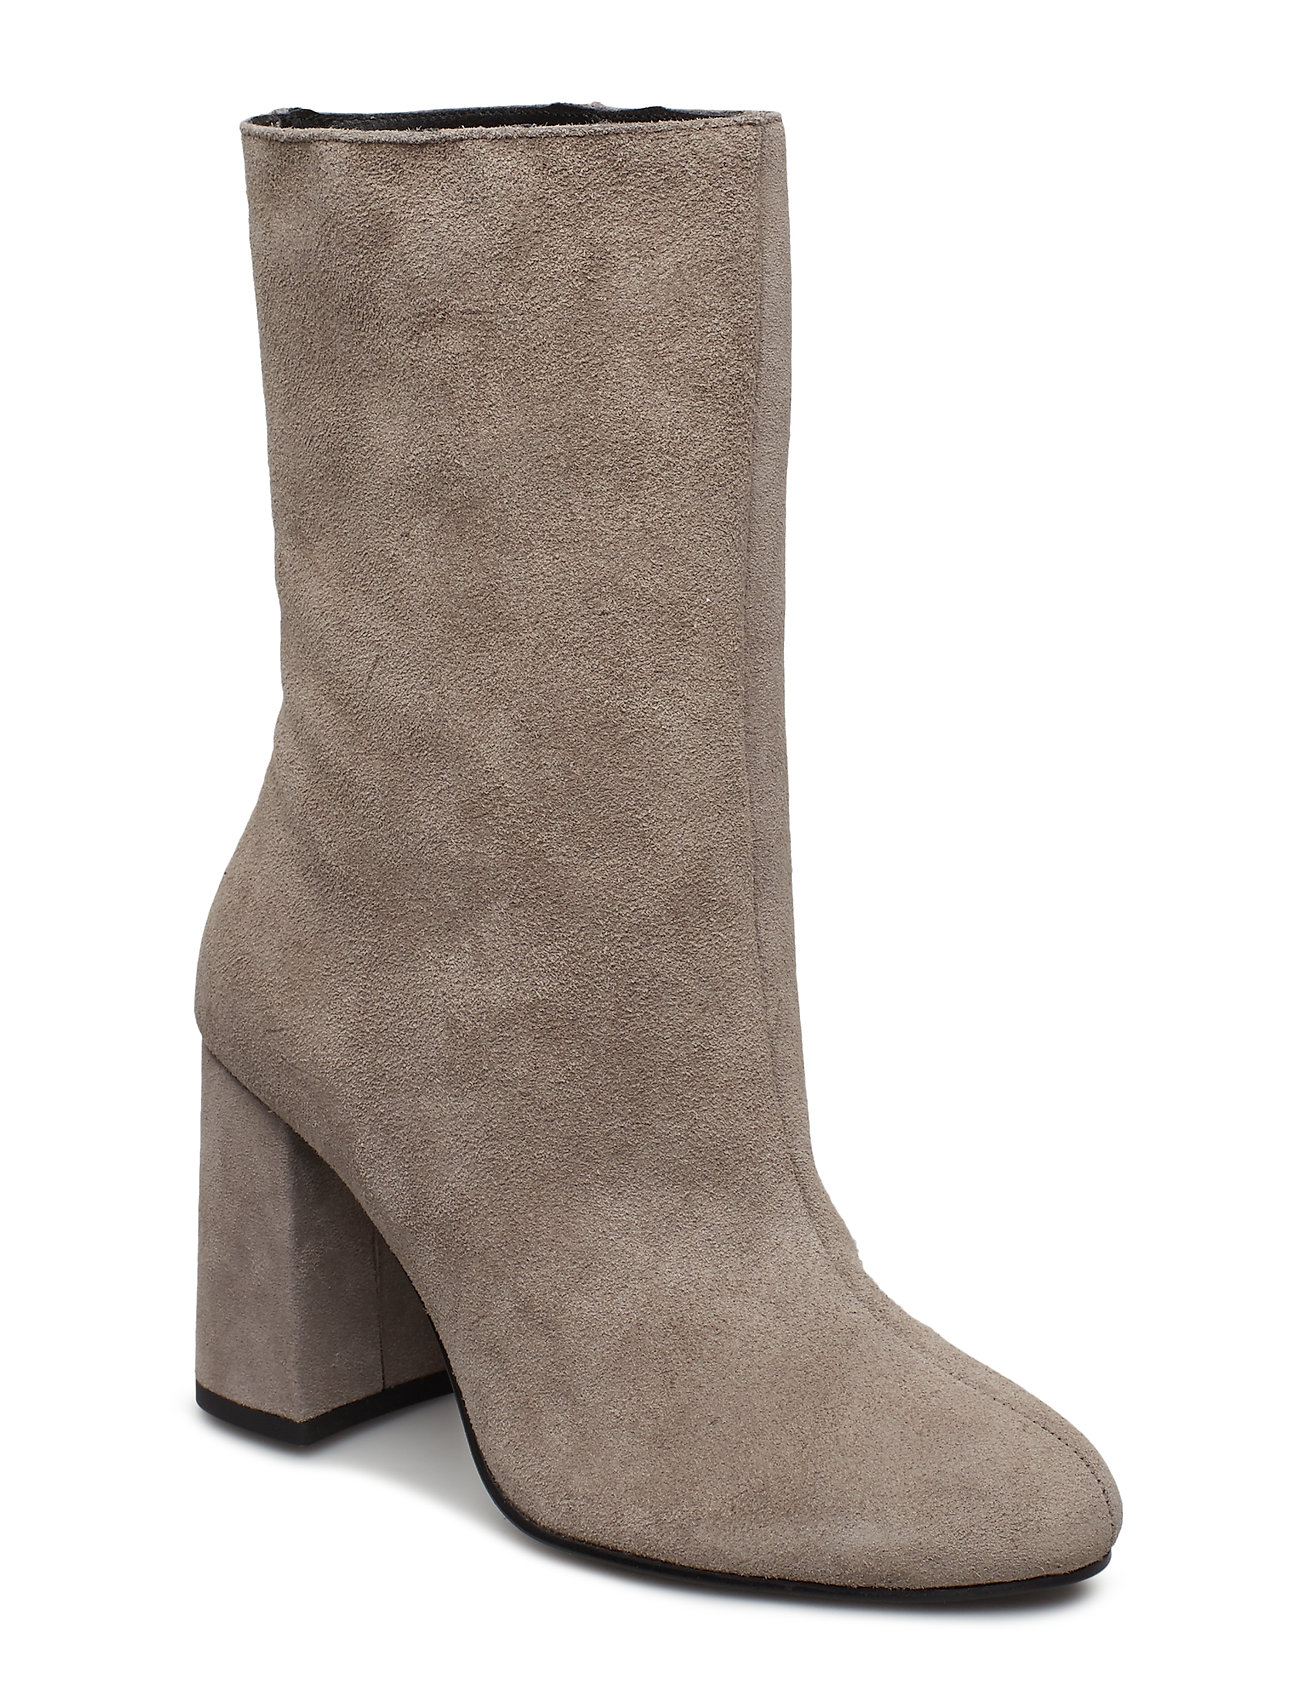 Image of Biacandice Suede Tube Boot Shoes Boots Ankle Boots Ankle Boot - Heel Beige Bianco (3413099669)